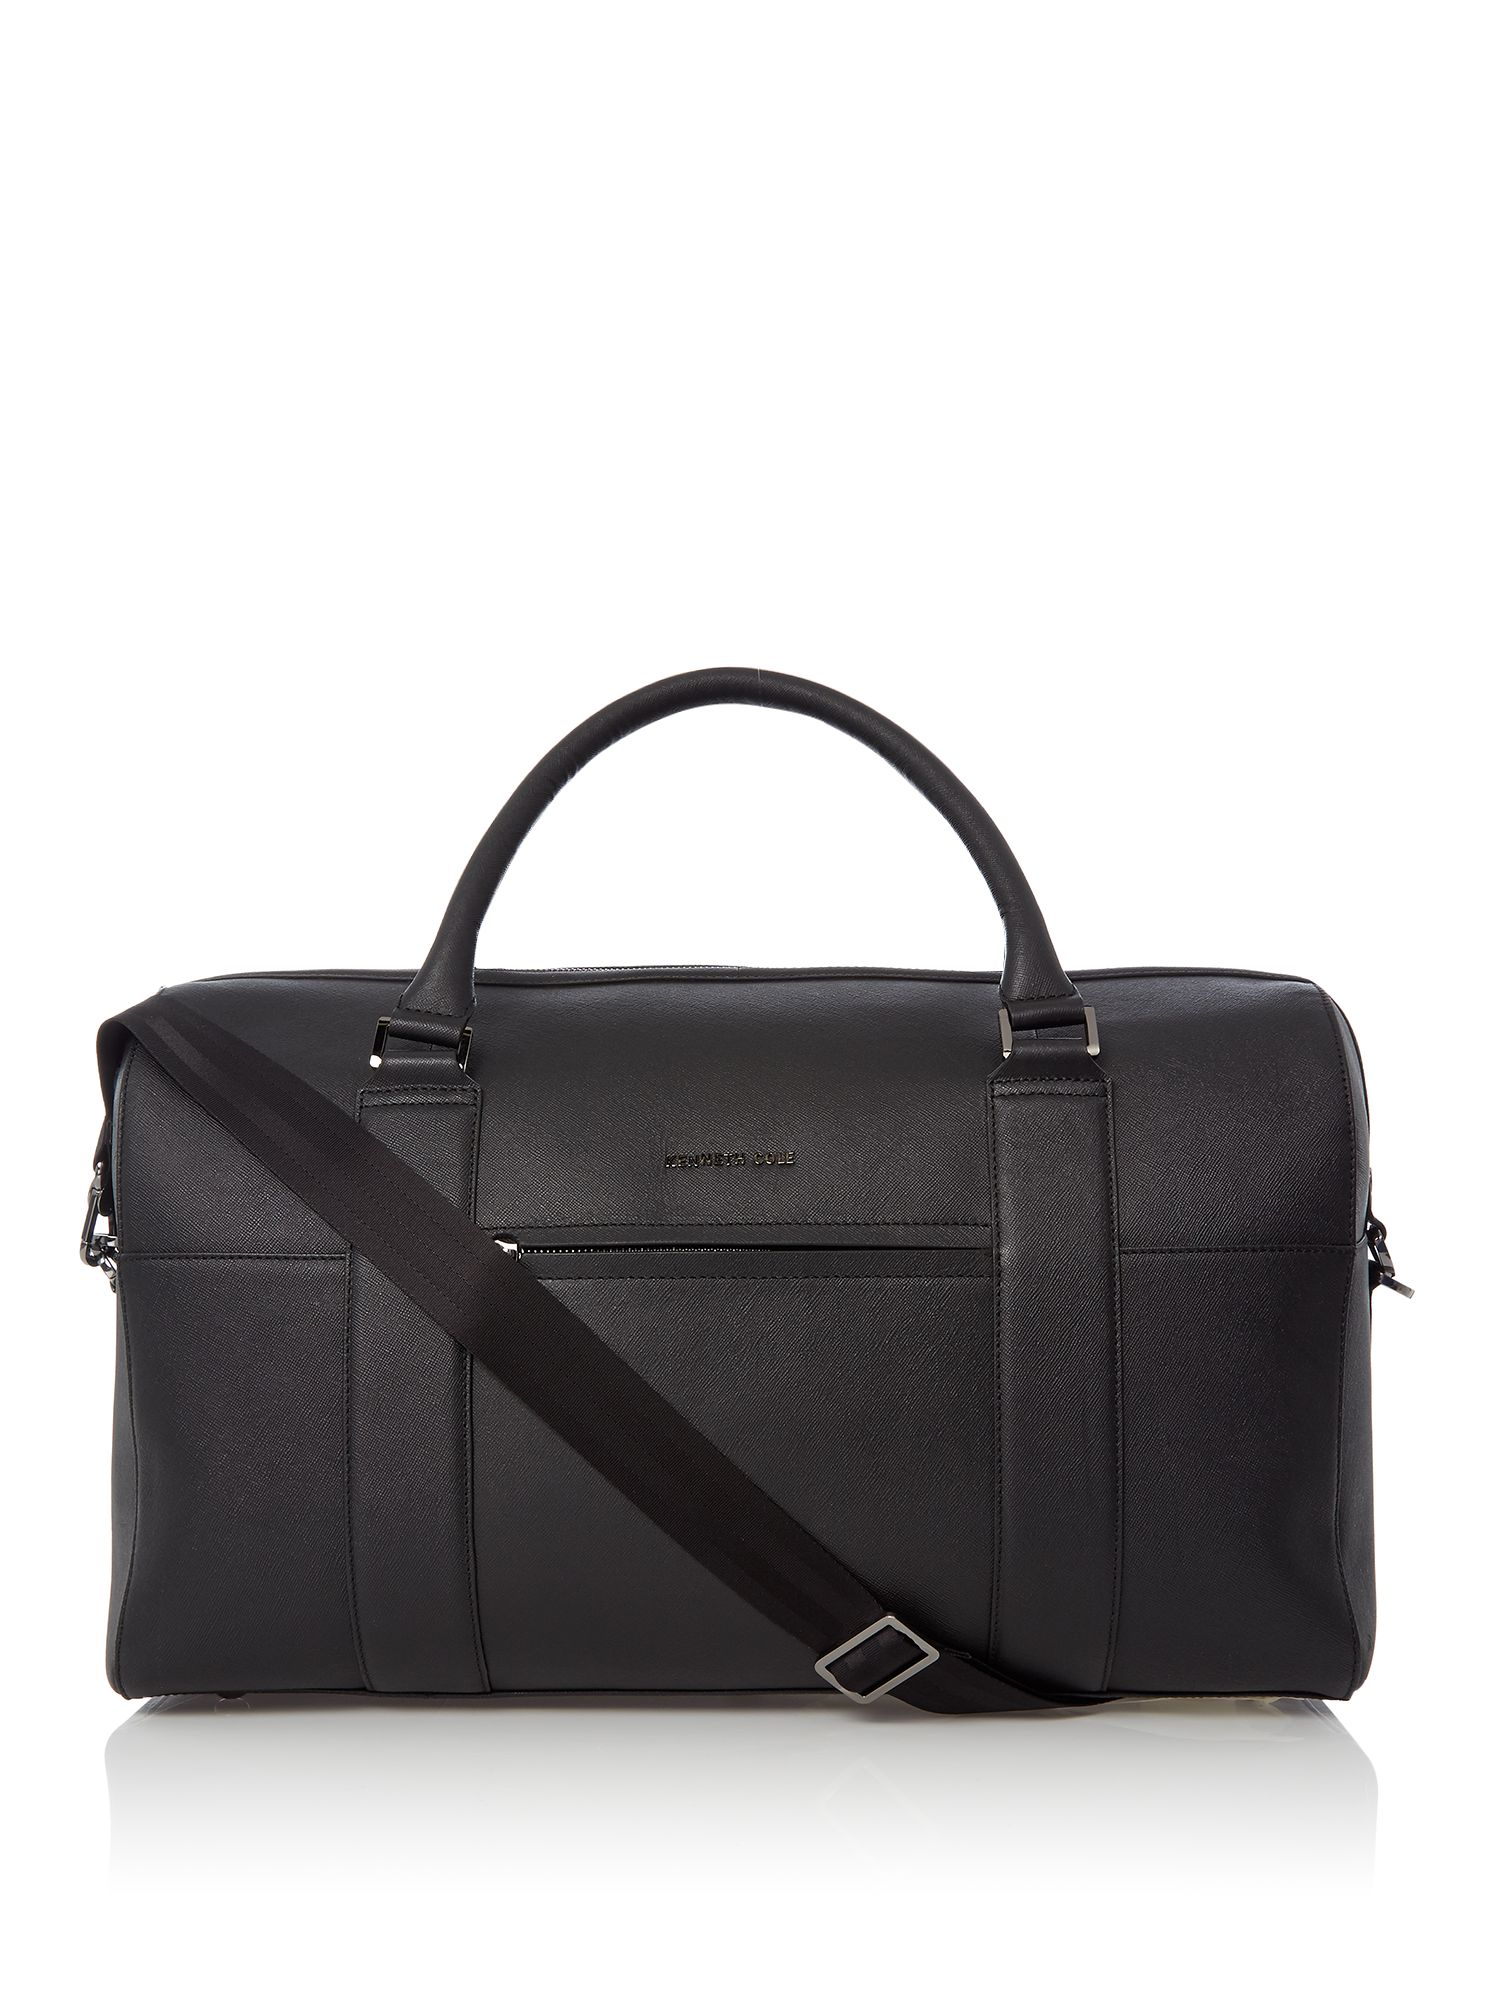 Kenneth Cole Saffiano Leather Holdall, Black